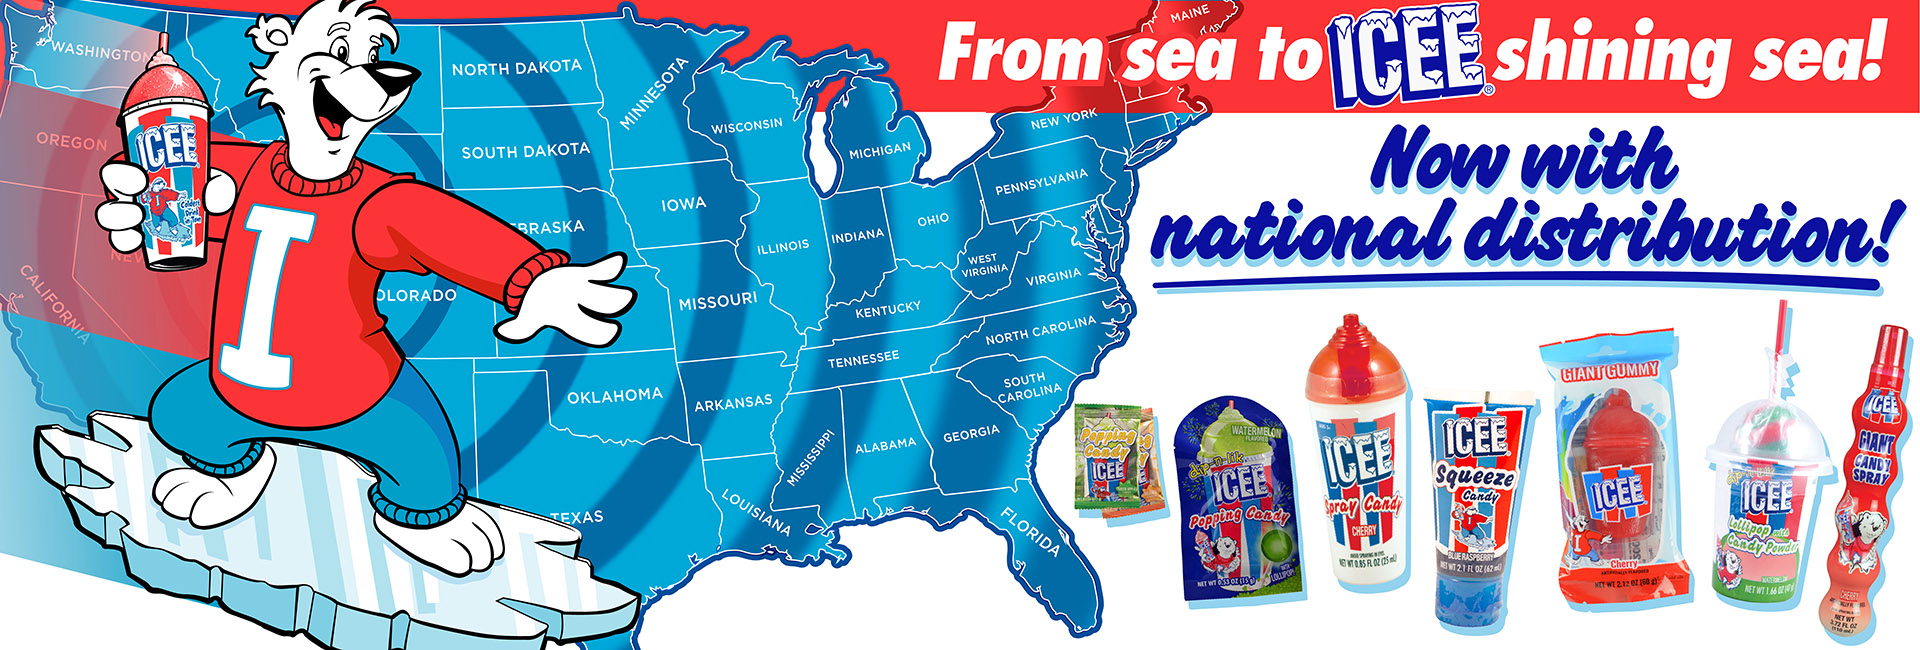 No territory restrictions anymore with ICEE!